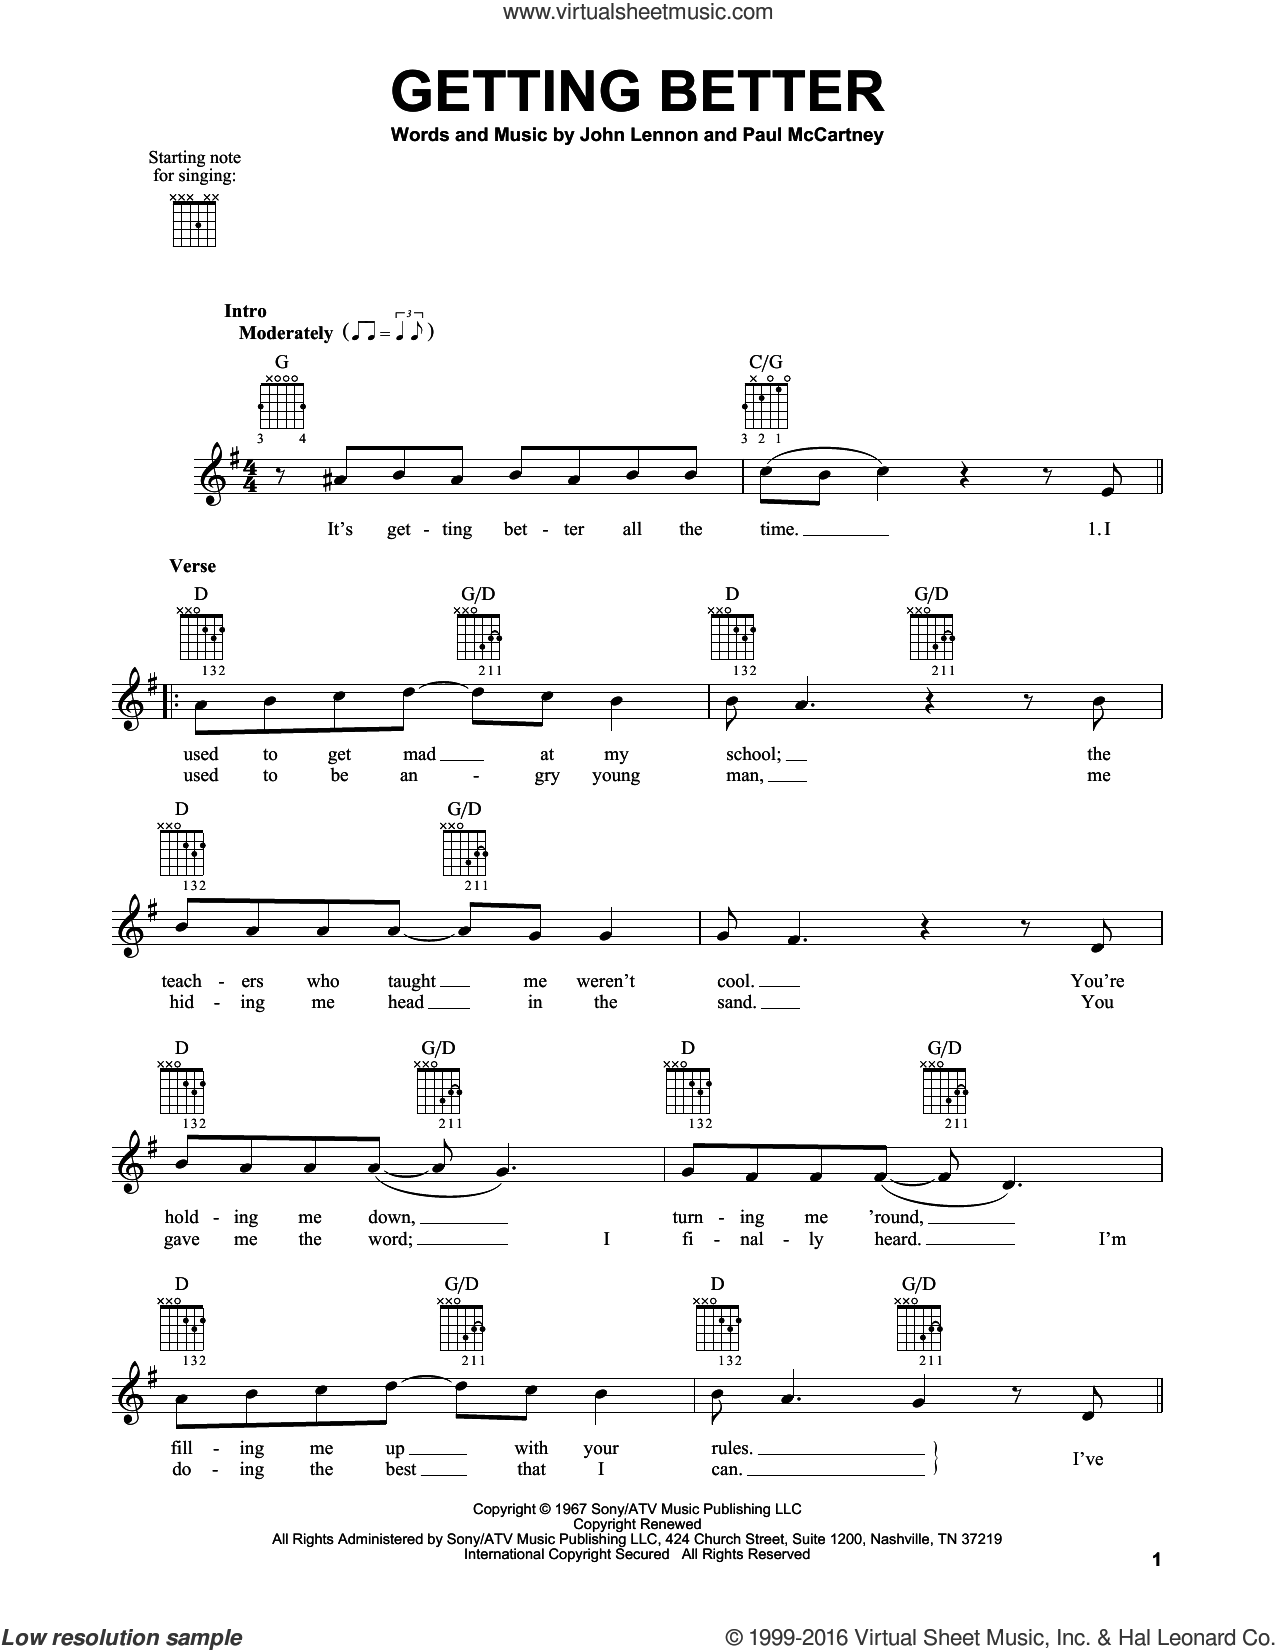 Getting Better sheet music for guitar solo (chords) by The Beatles, John Lennon and Paul McCartney, easy guitar (chords)